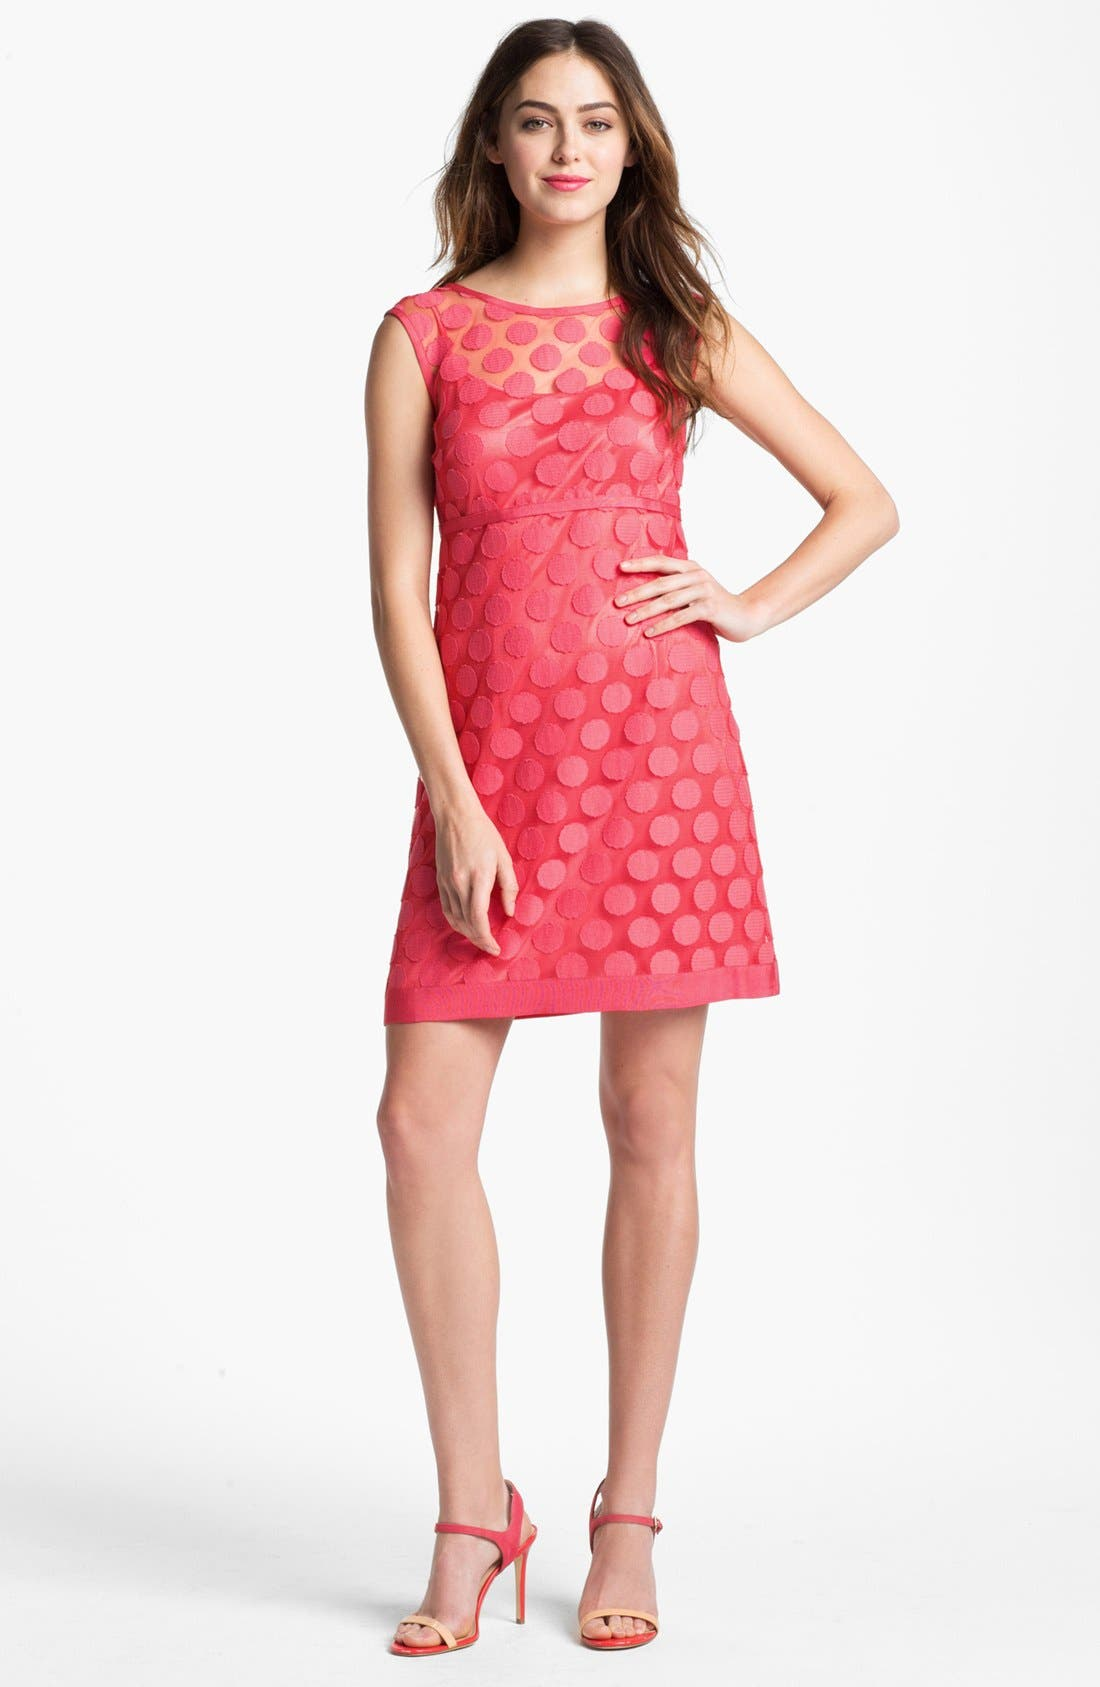 Alternate Image 1 Selected - Laundry by Shelli Segal Polka Dot Lace A-Line Dress (Regular & Petite)